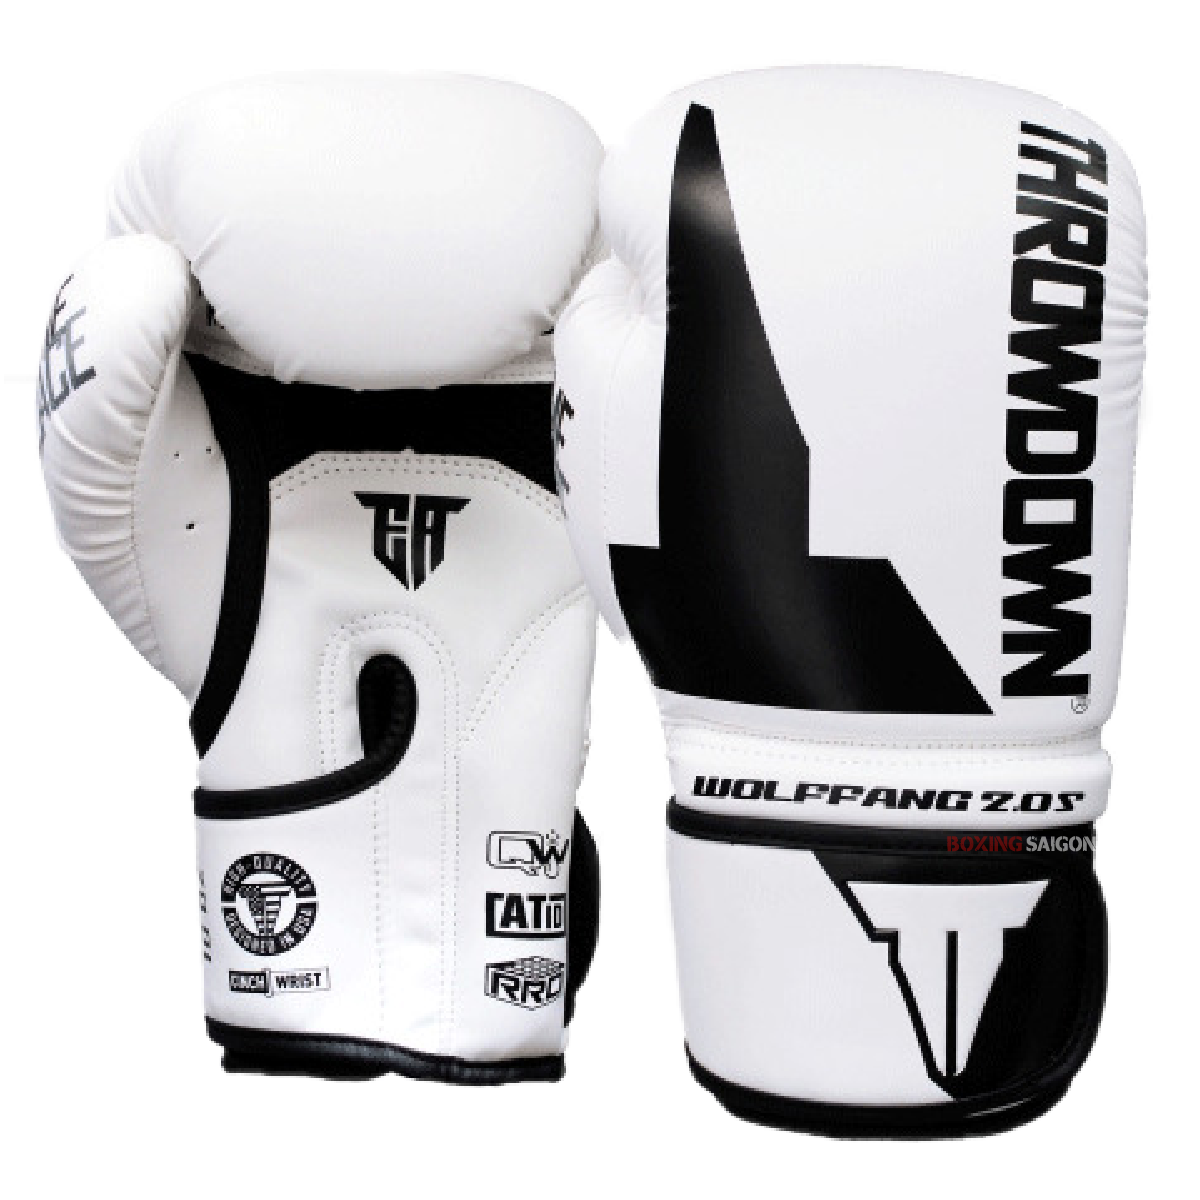 GĂNG TAY THROWDOWN WOLF FANG 2.0S BOXING GLOVES - WHITE/BLACK